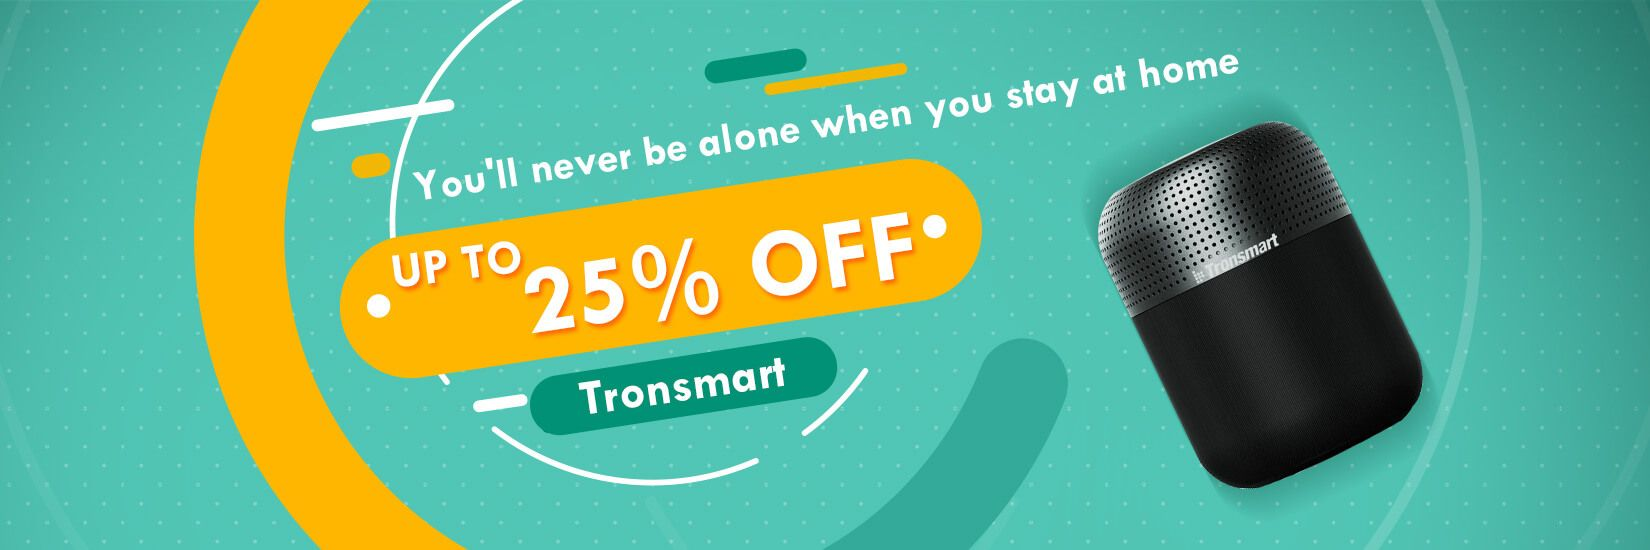 Tronsmart - You'll never be alone when you stay at home - Geekbuying.pl